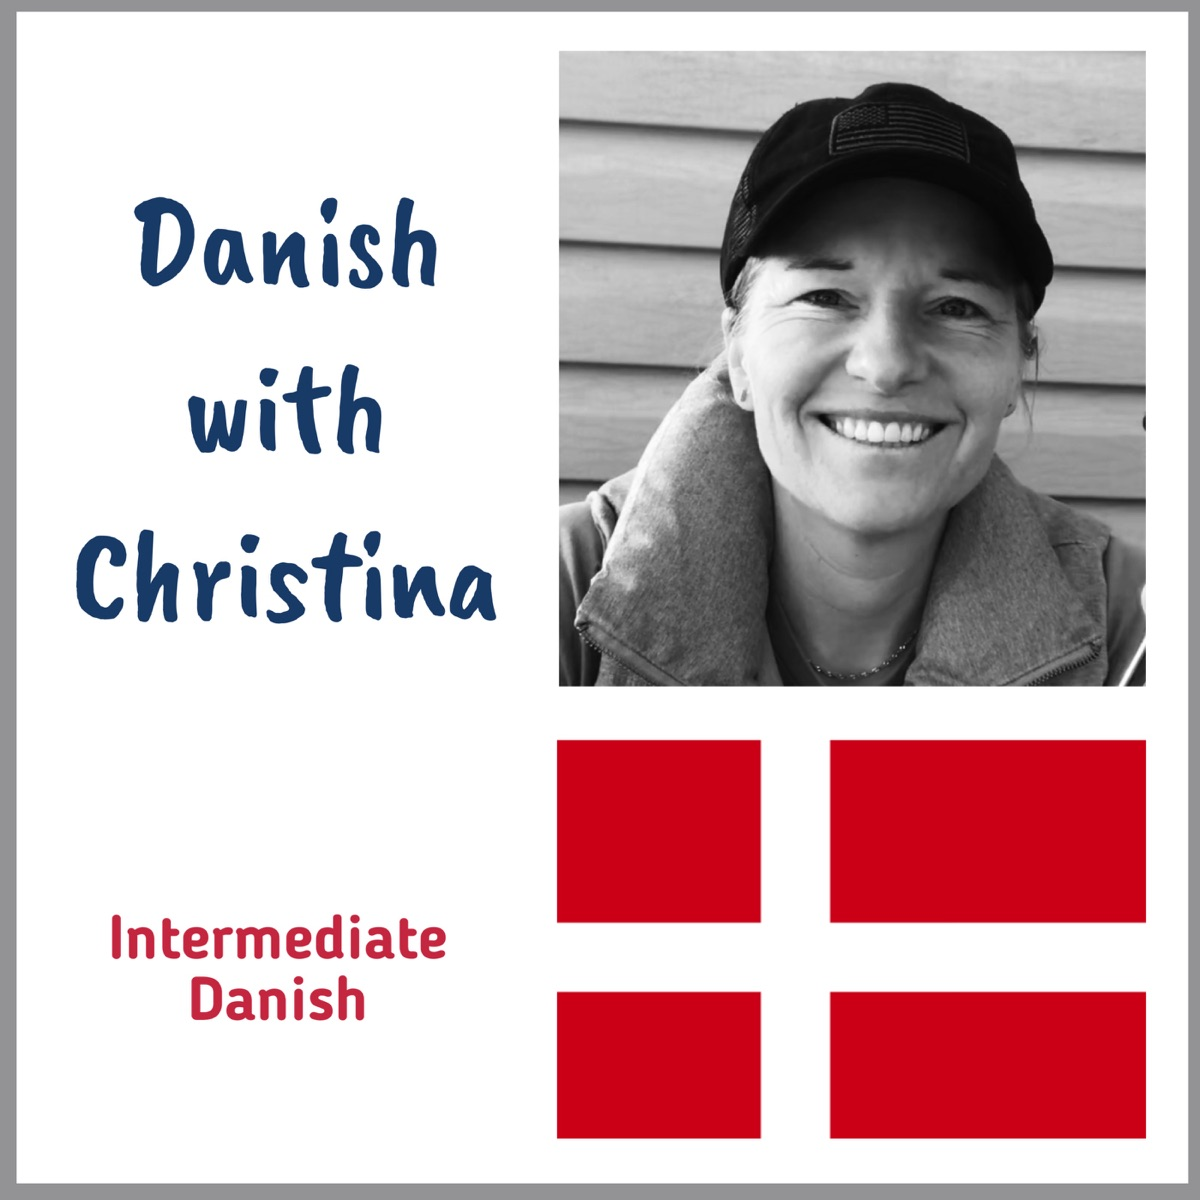 Danish with Christina - intermediate Danish language podcast